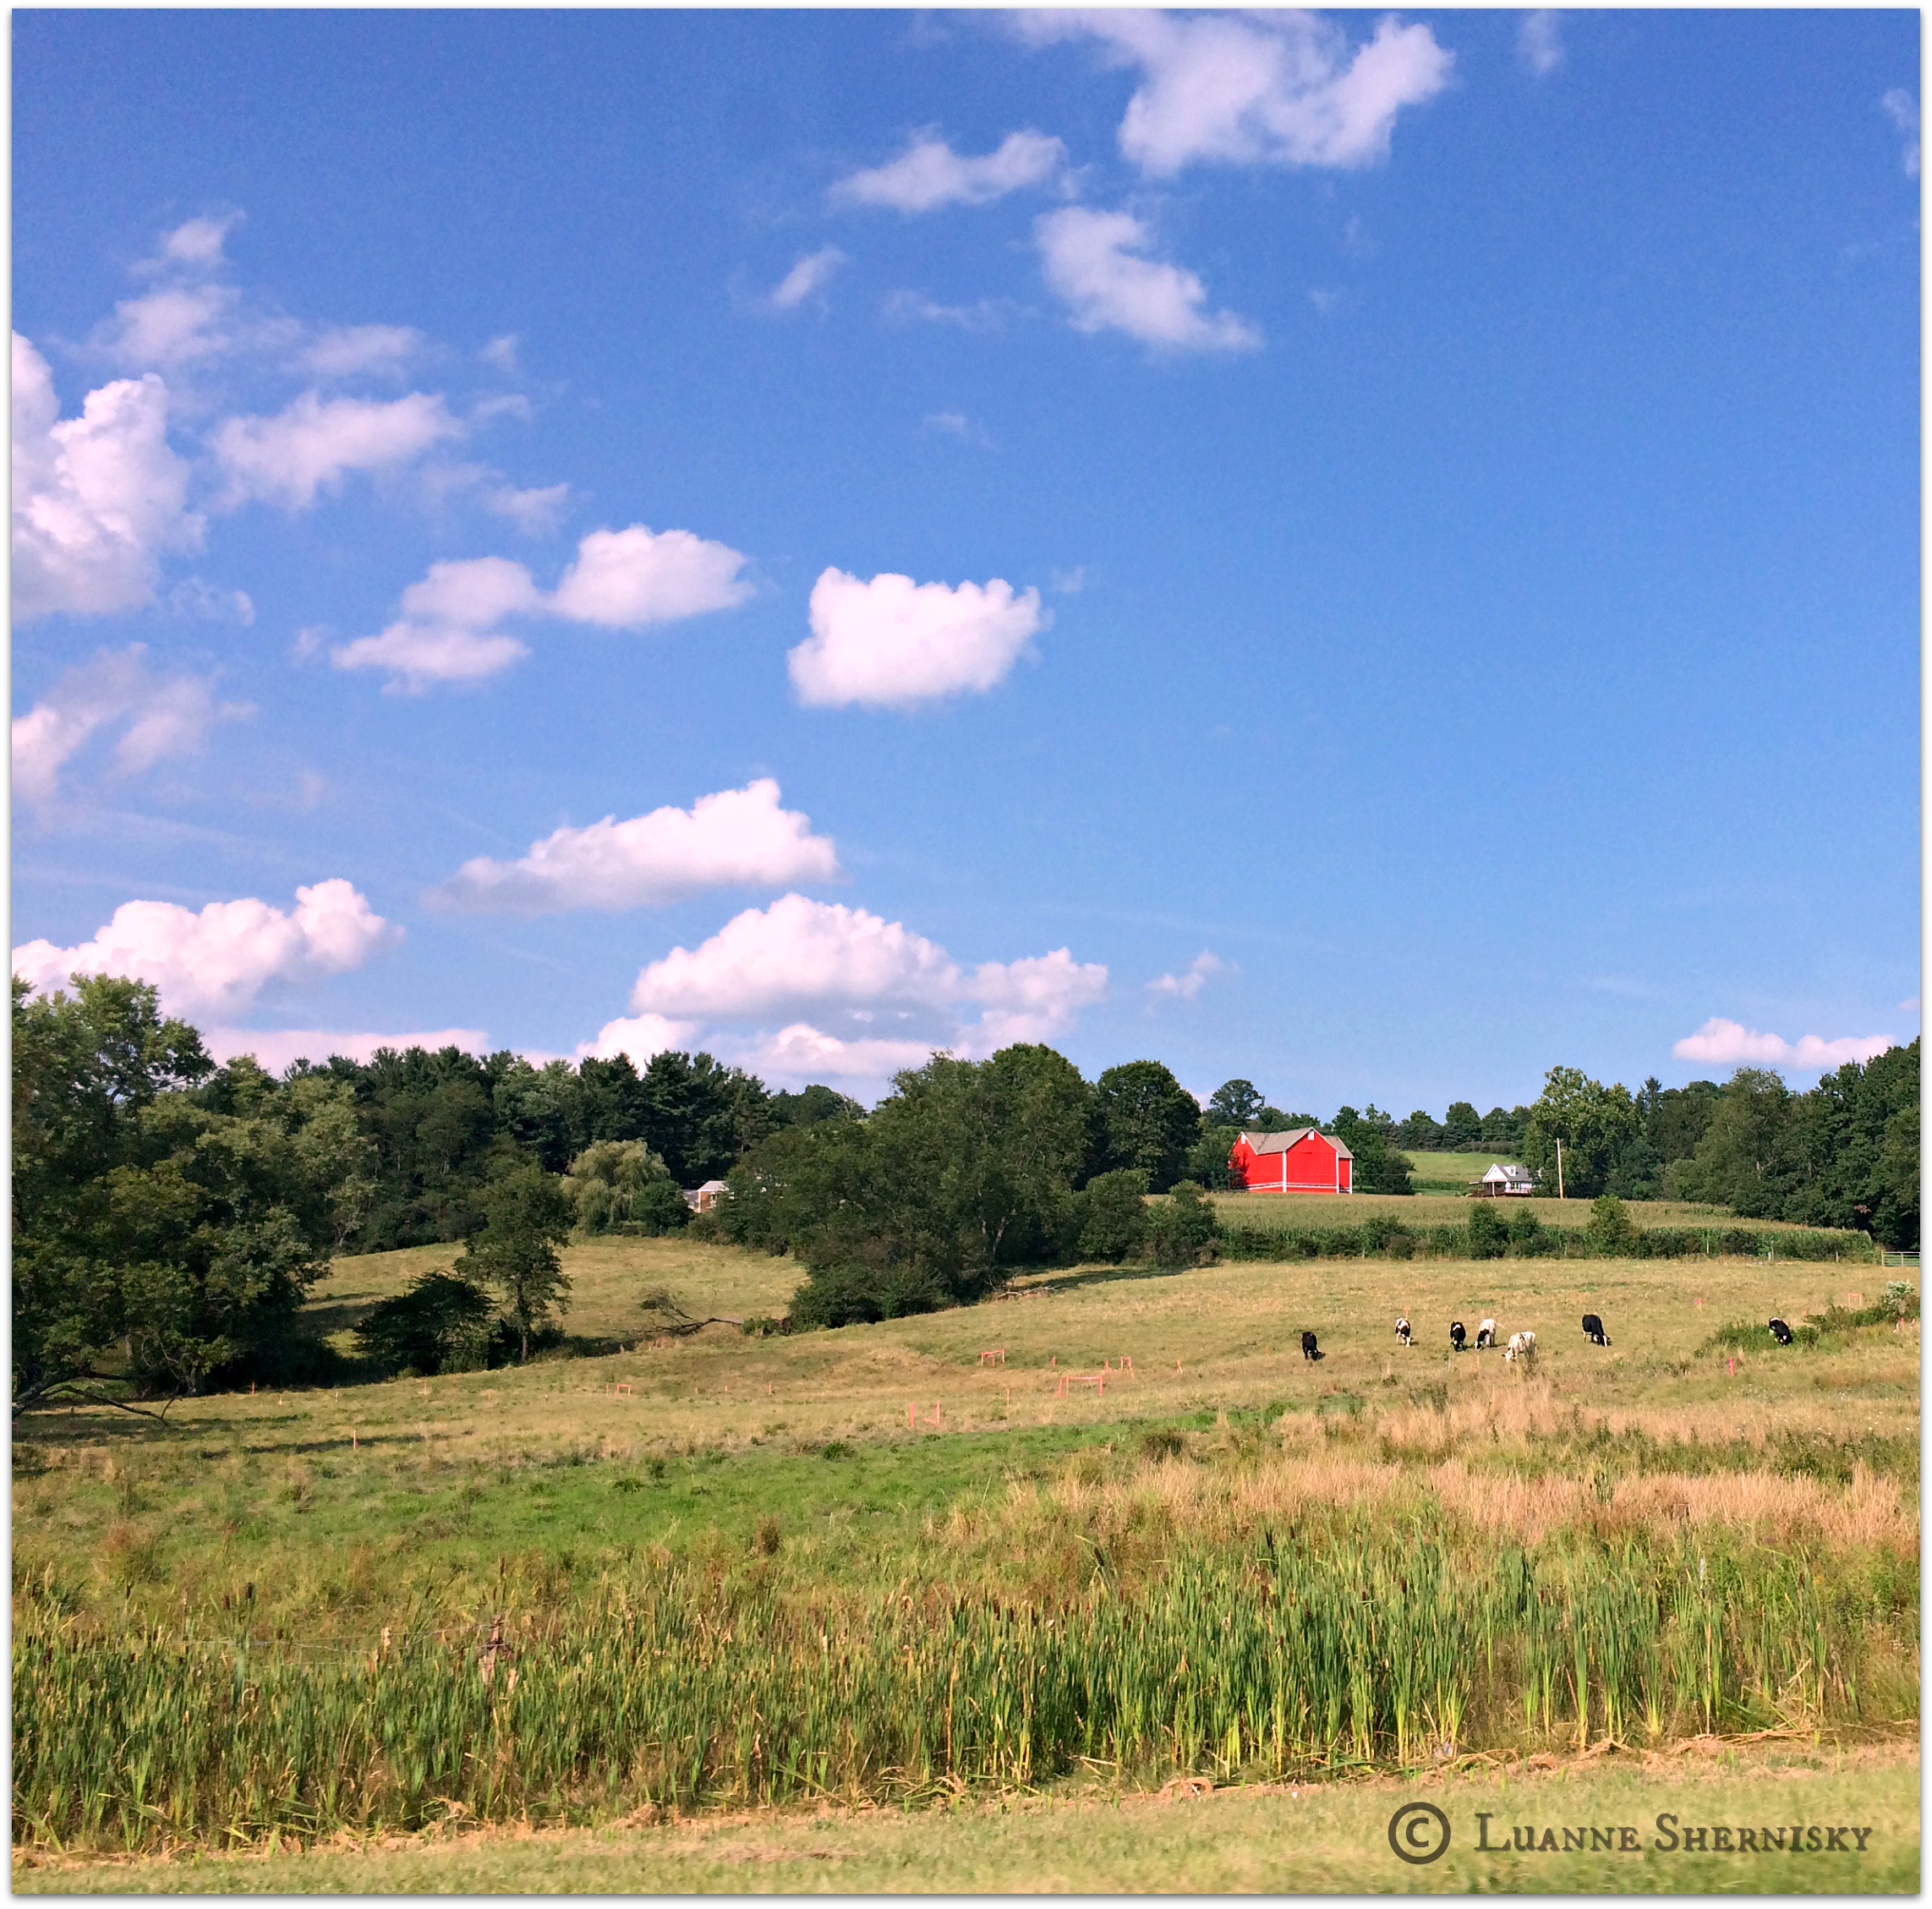 Landscape of red barn set against green background and blue sky